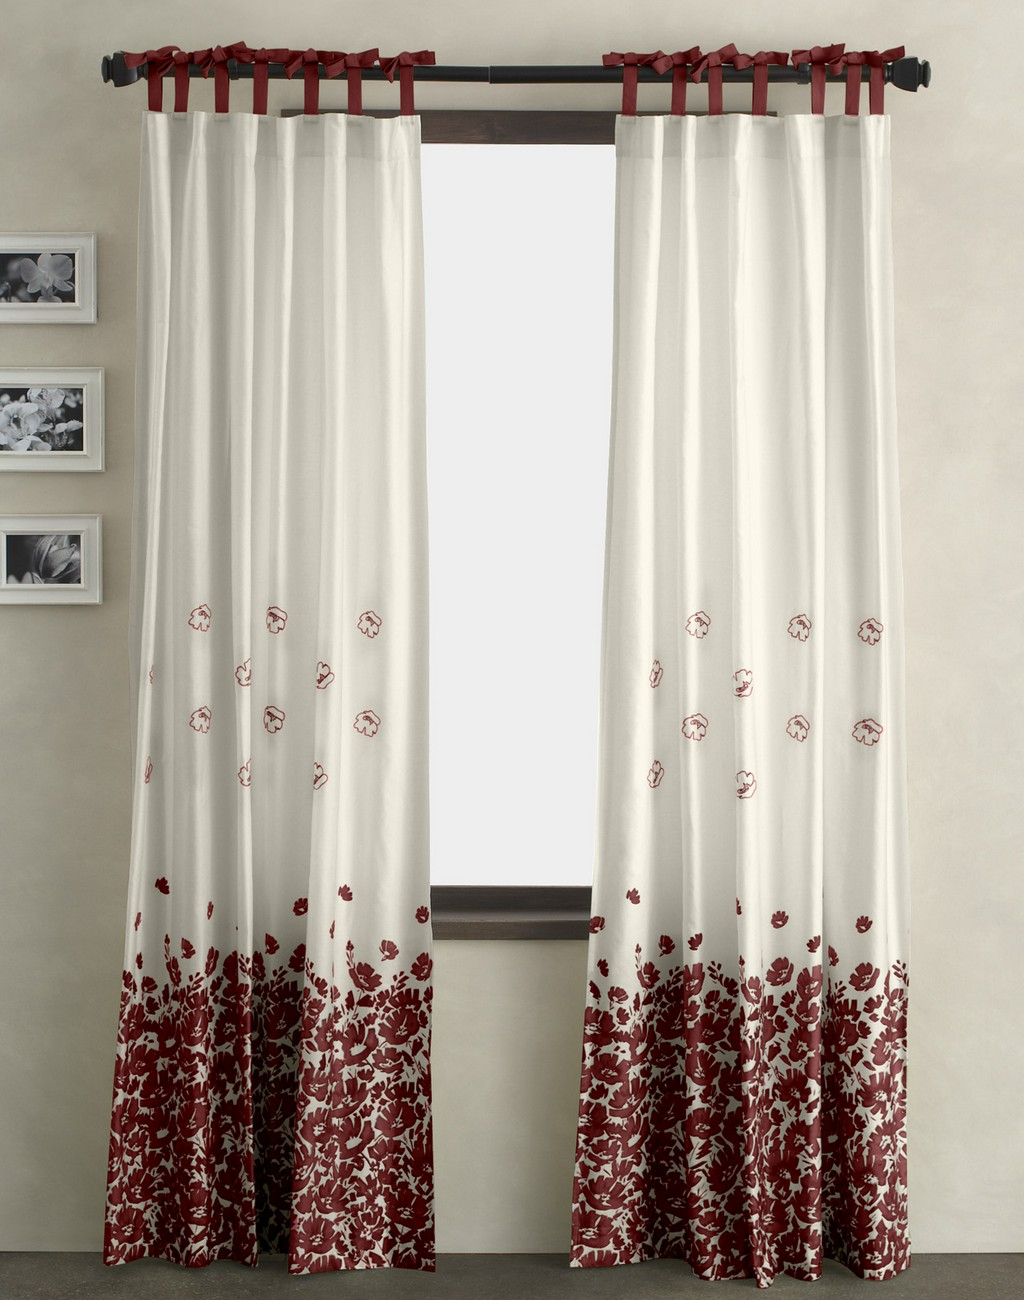 curtain patterns, insulated window curtains, the iron curtain, decorative curtain rods